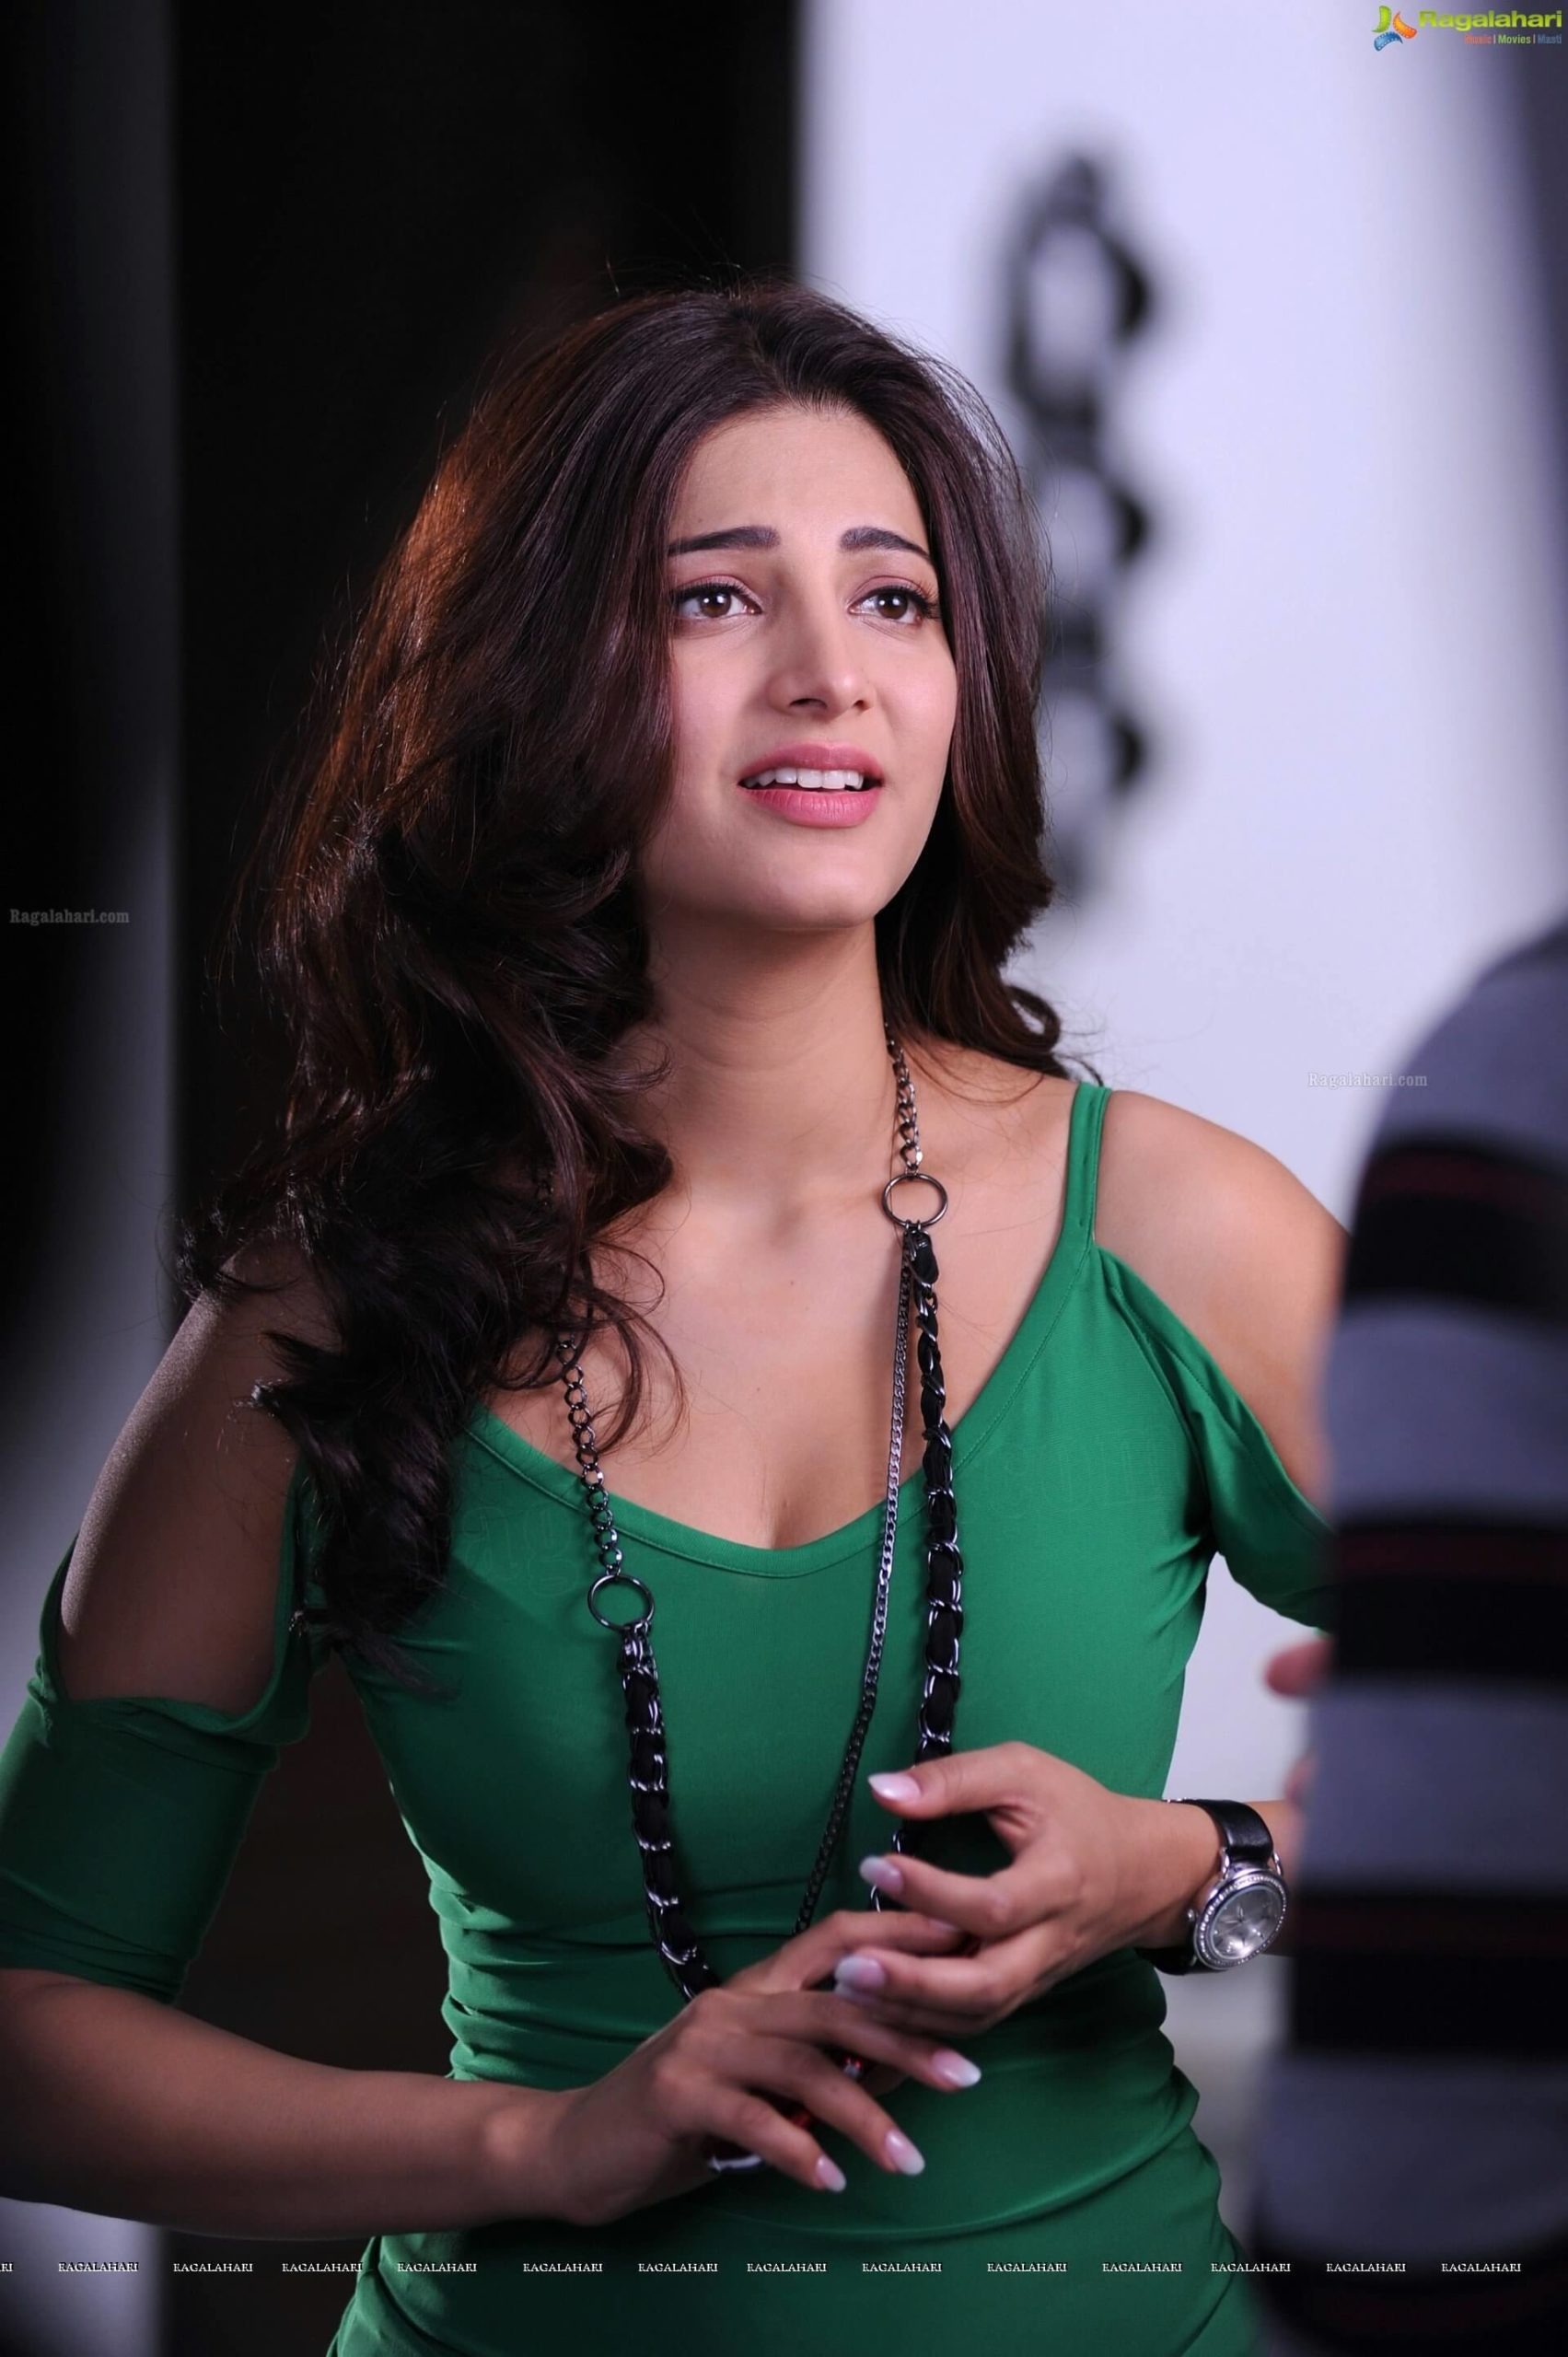 Shruti Haasan Age, Image(photos), Date Of Birth, Height, Boyfriend, Sister, Mother, Religion, Biography, Marriage, Family, Net Worth, Education, Awards, Instagram, Twitter, Wiki, Facebook, Imd ( (134)